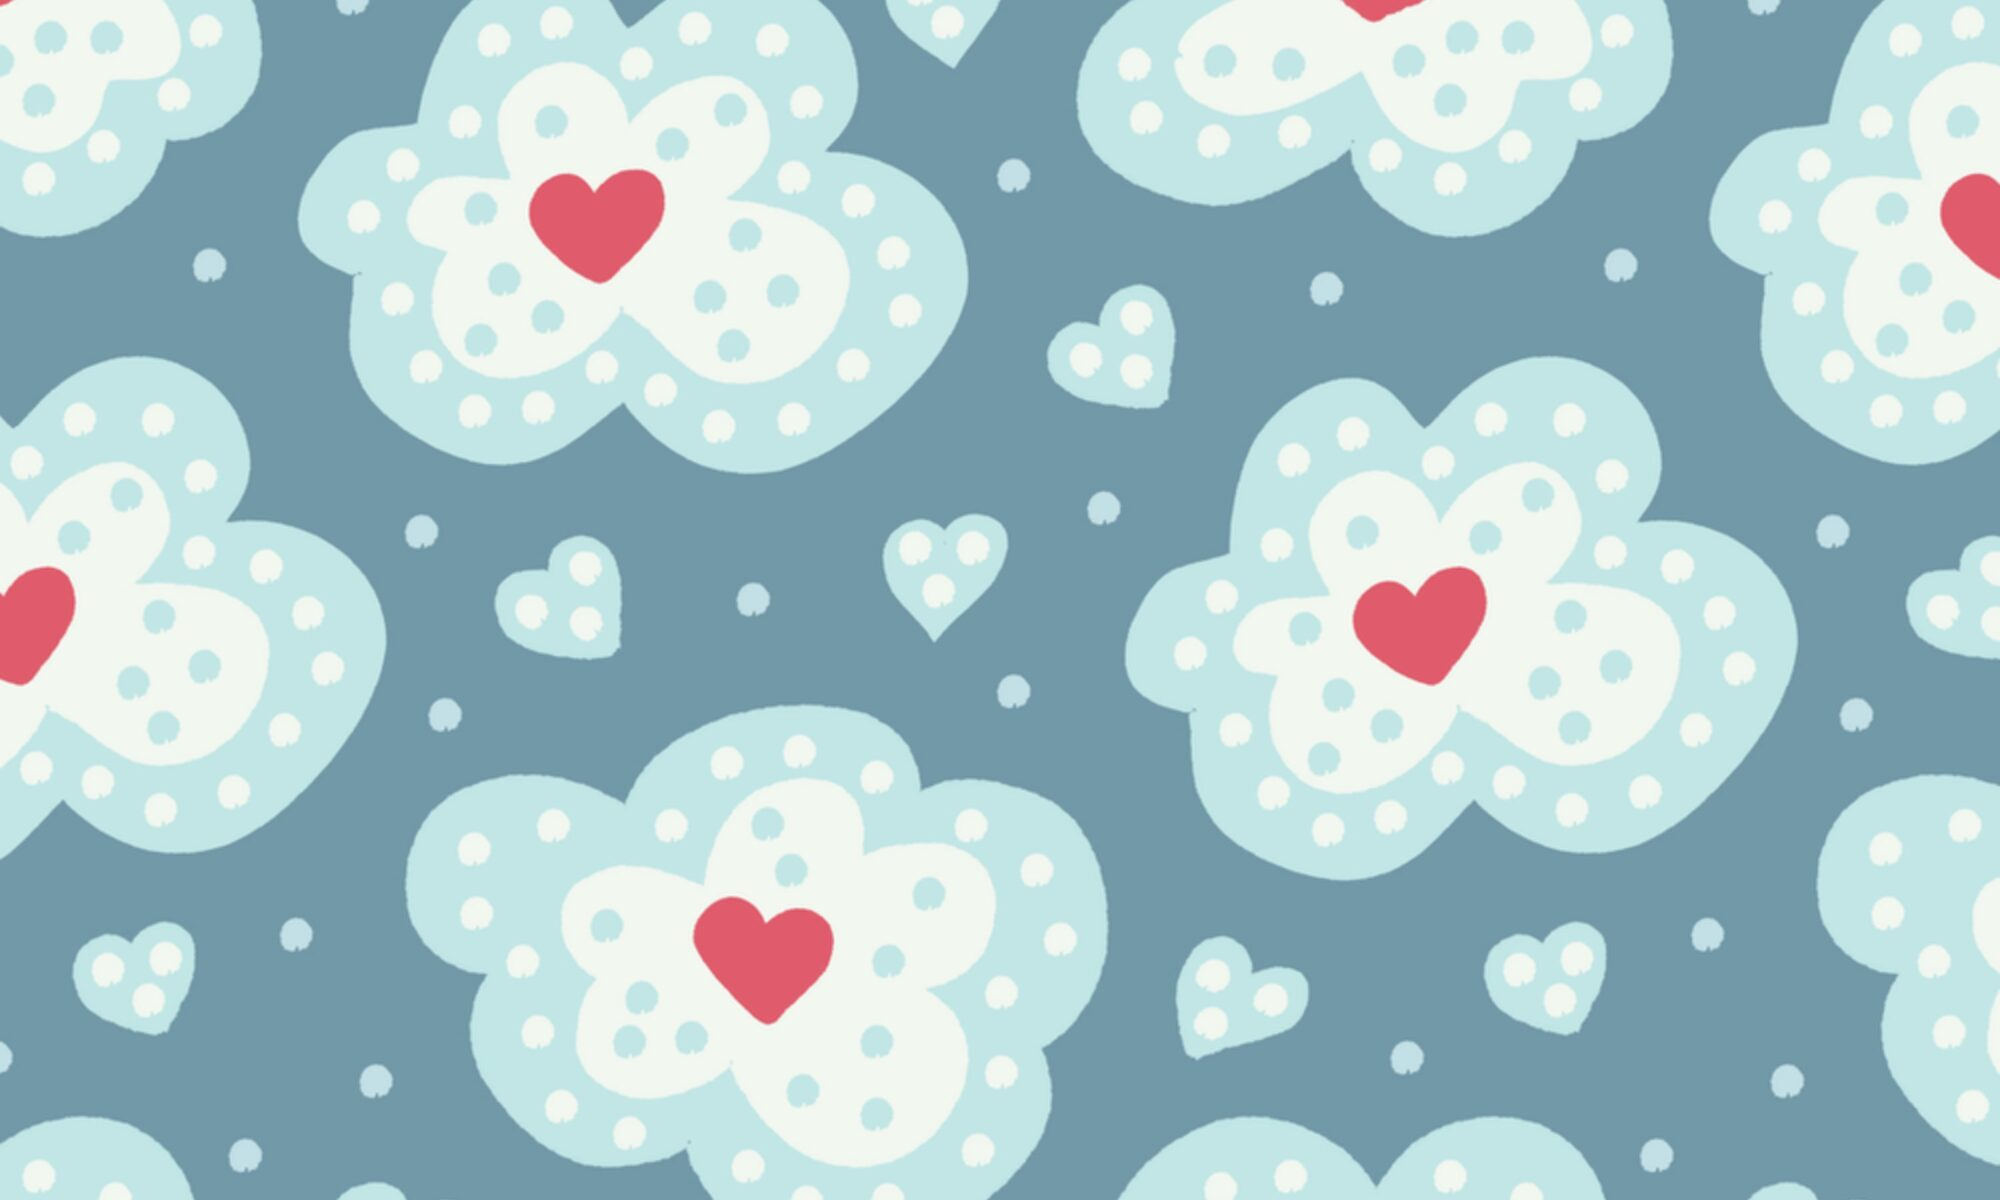 Snow clouds and hearts winter pattern